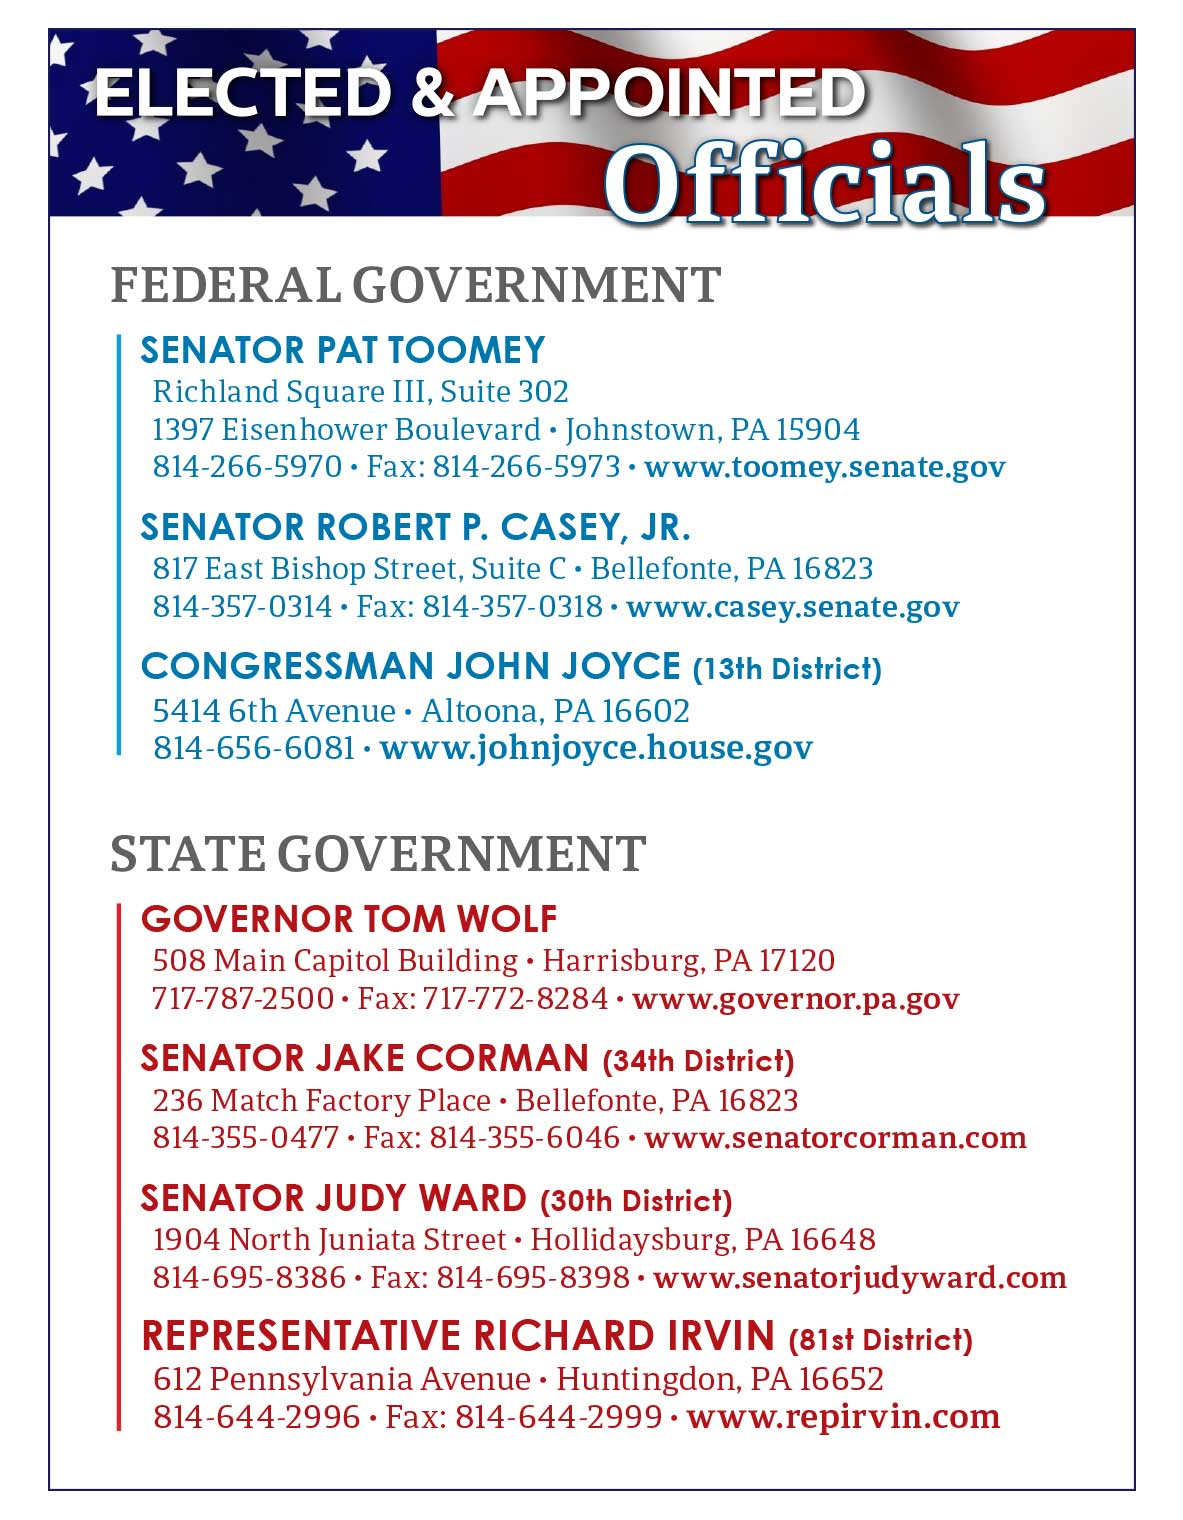 Elected & Appointed Officials